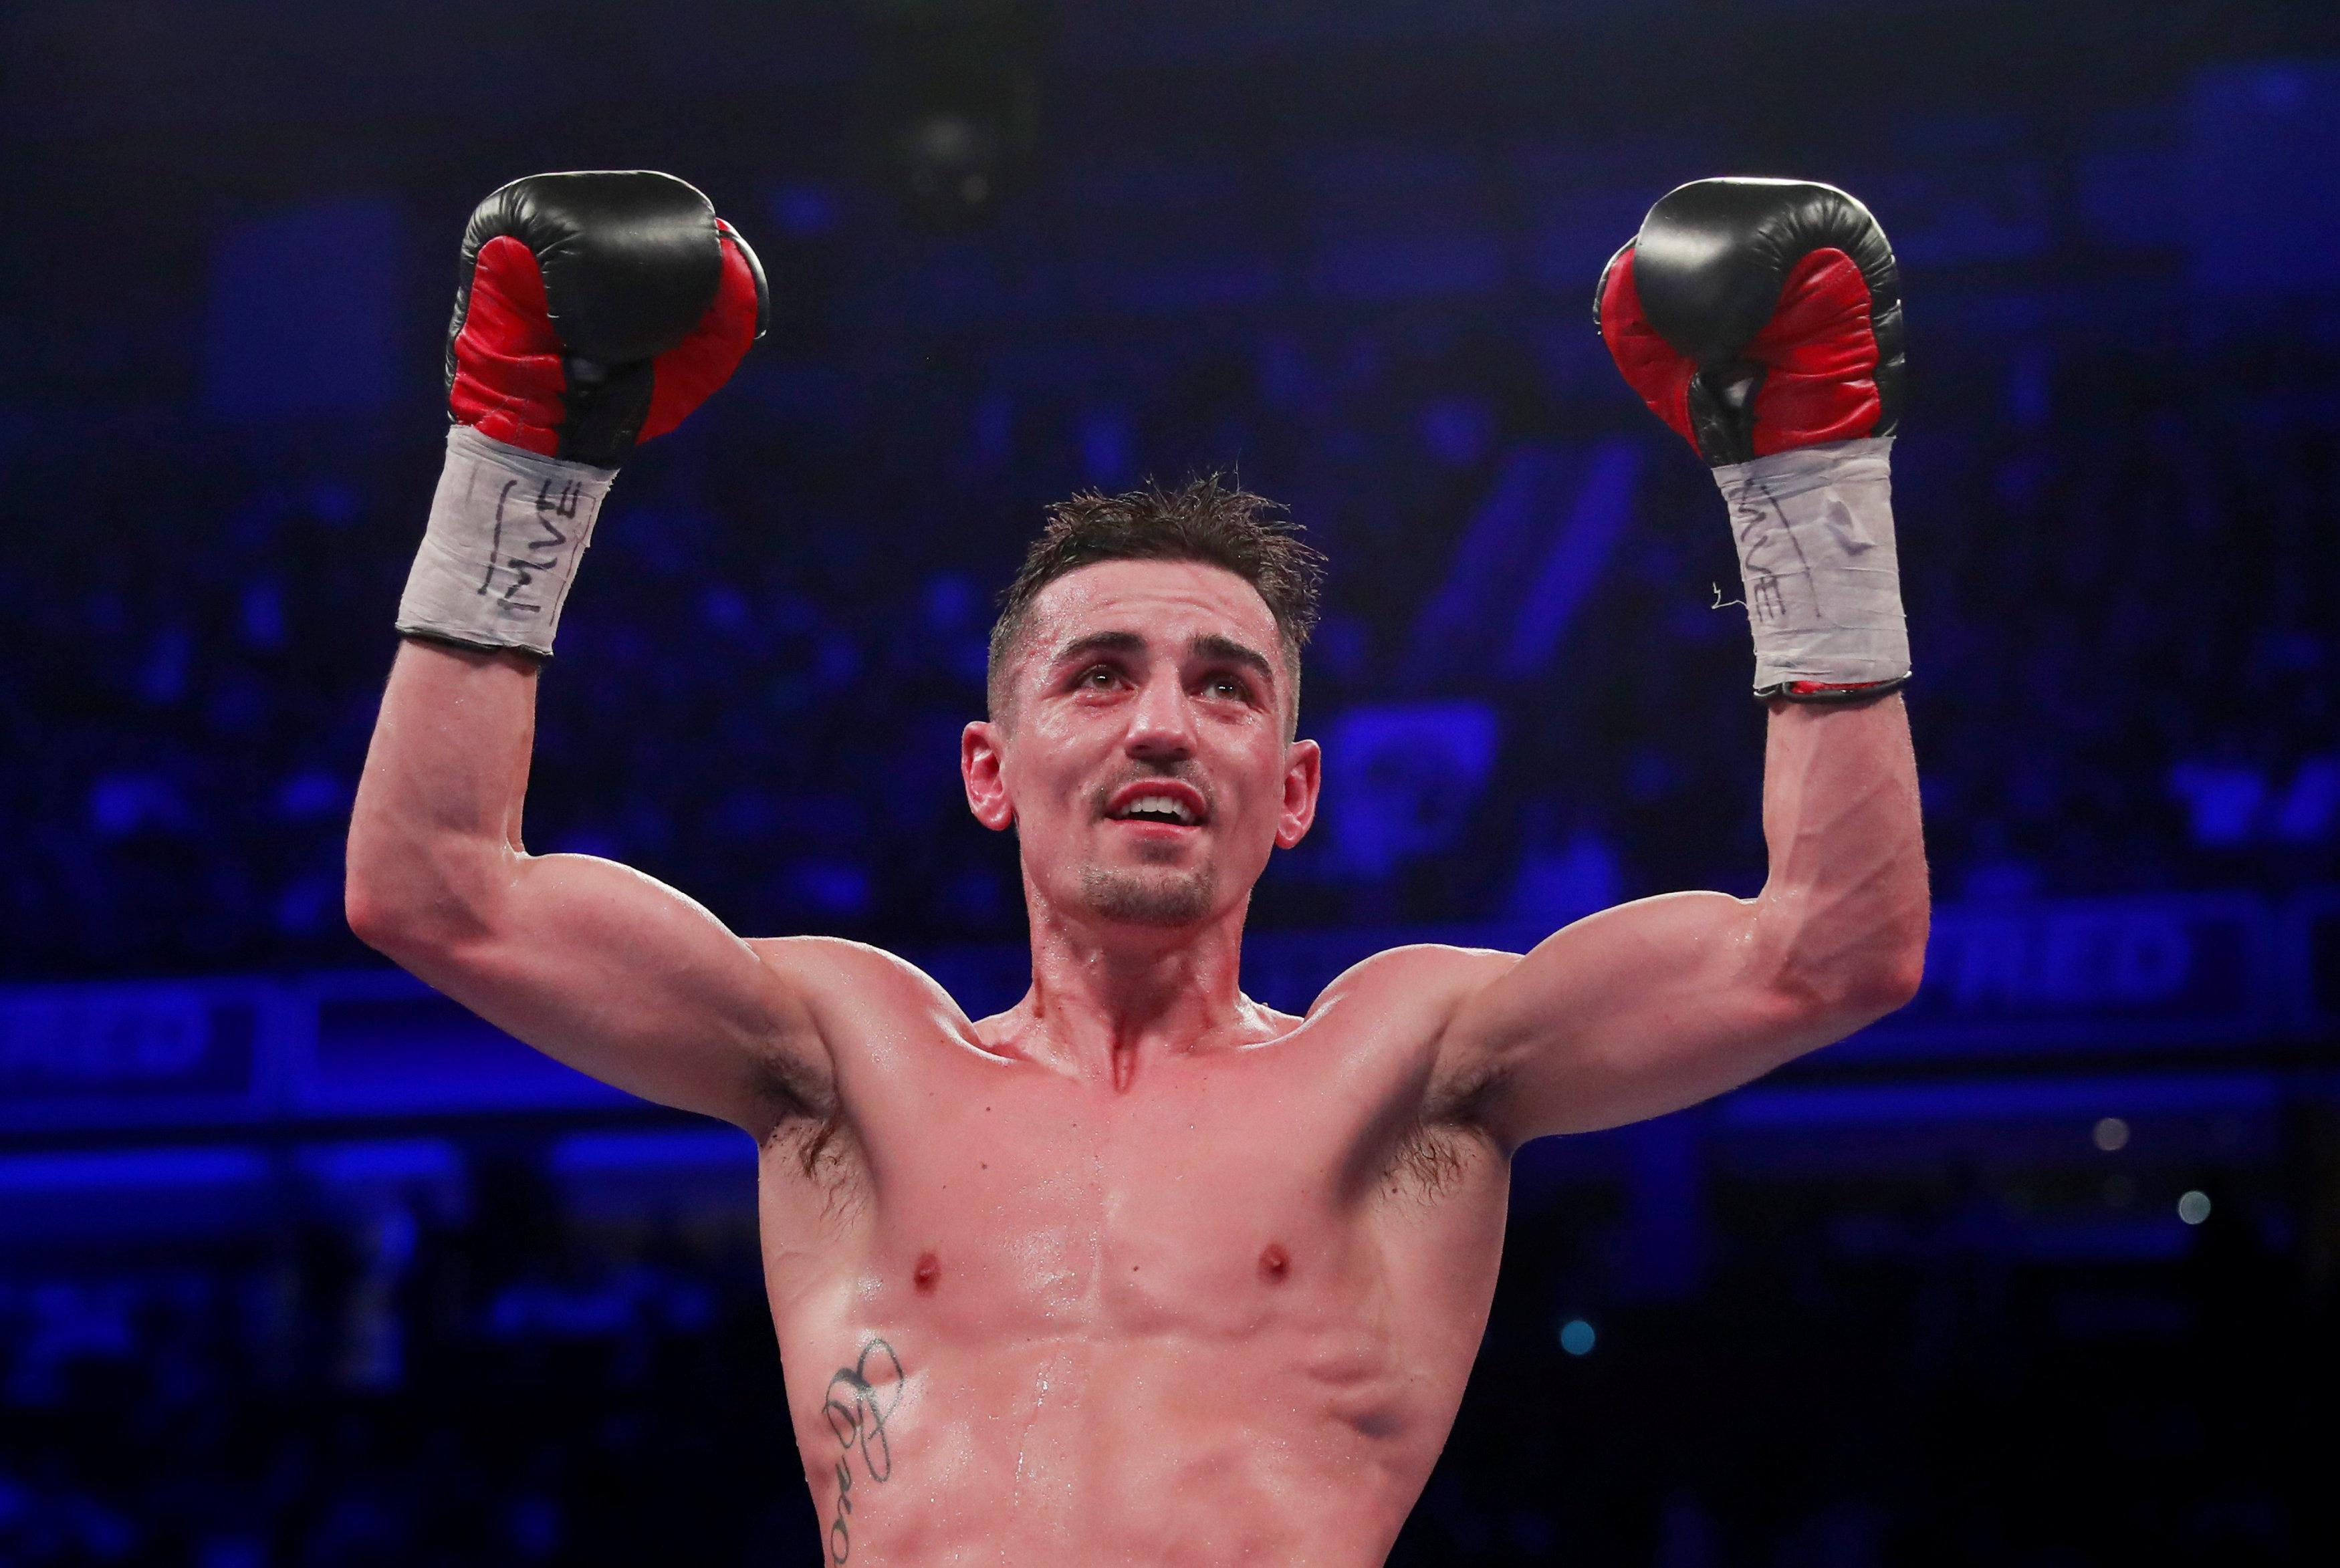 Anthony Crolla could be close to sealing a sensational deal to fight Vasyl Lomachenko for the world title